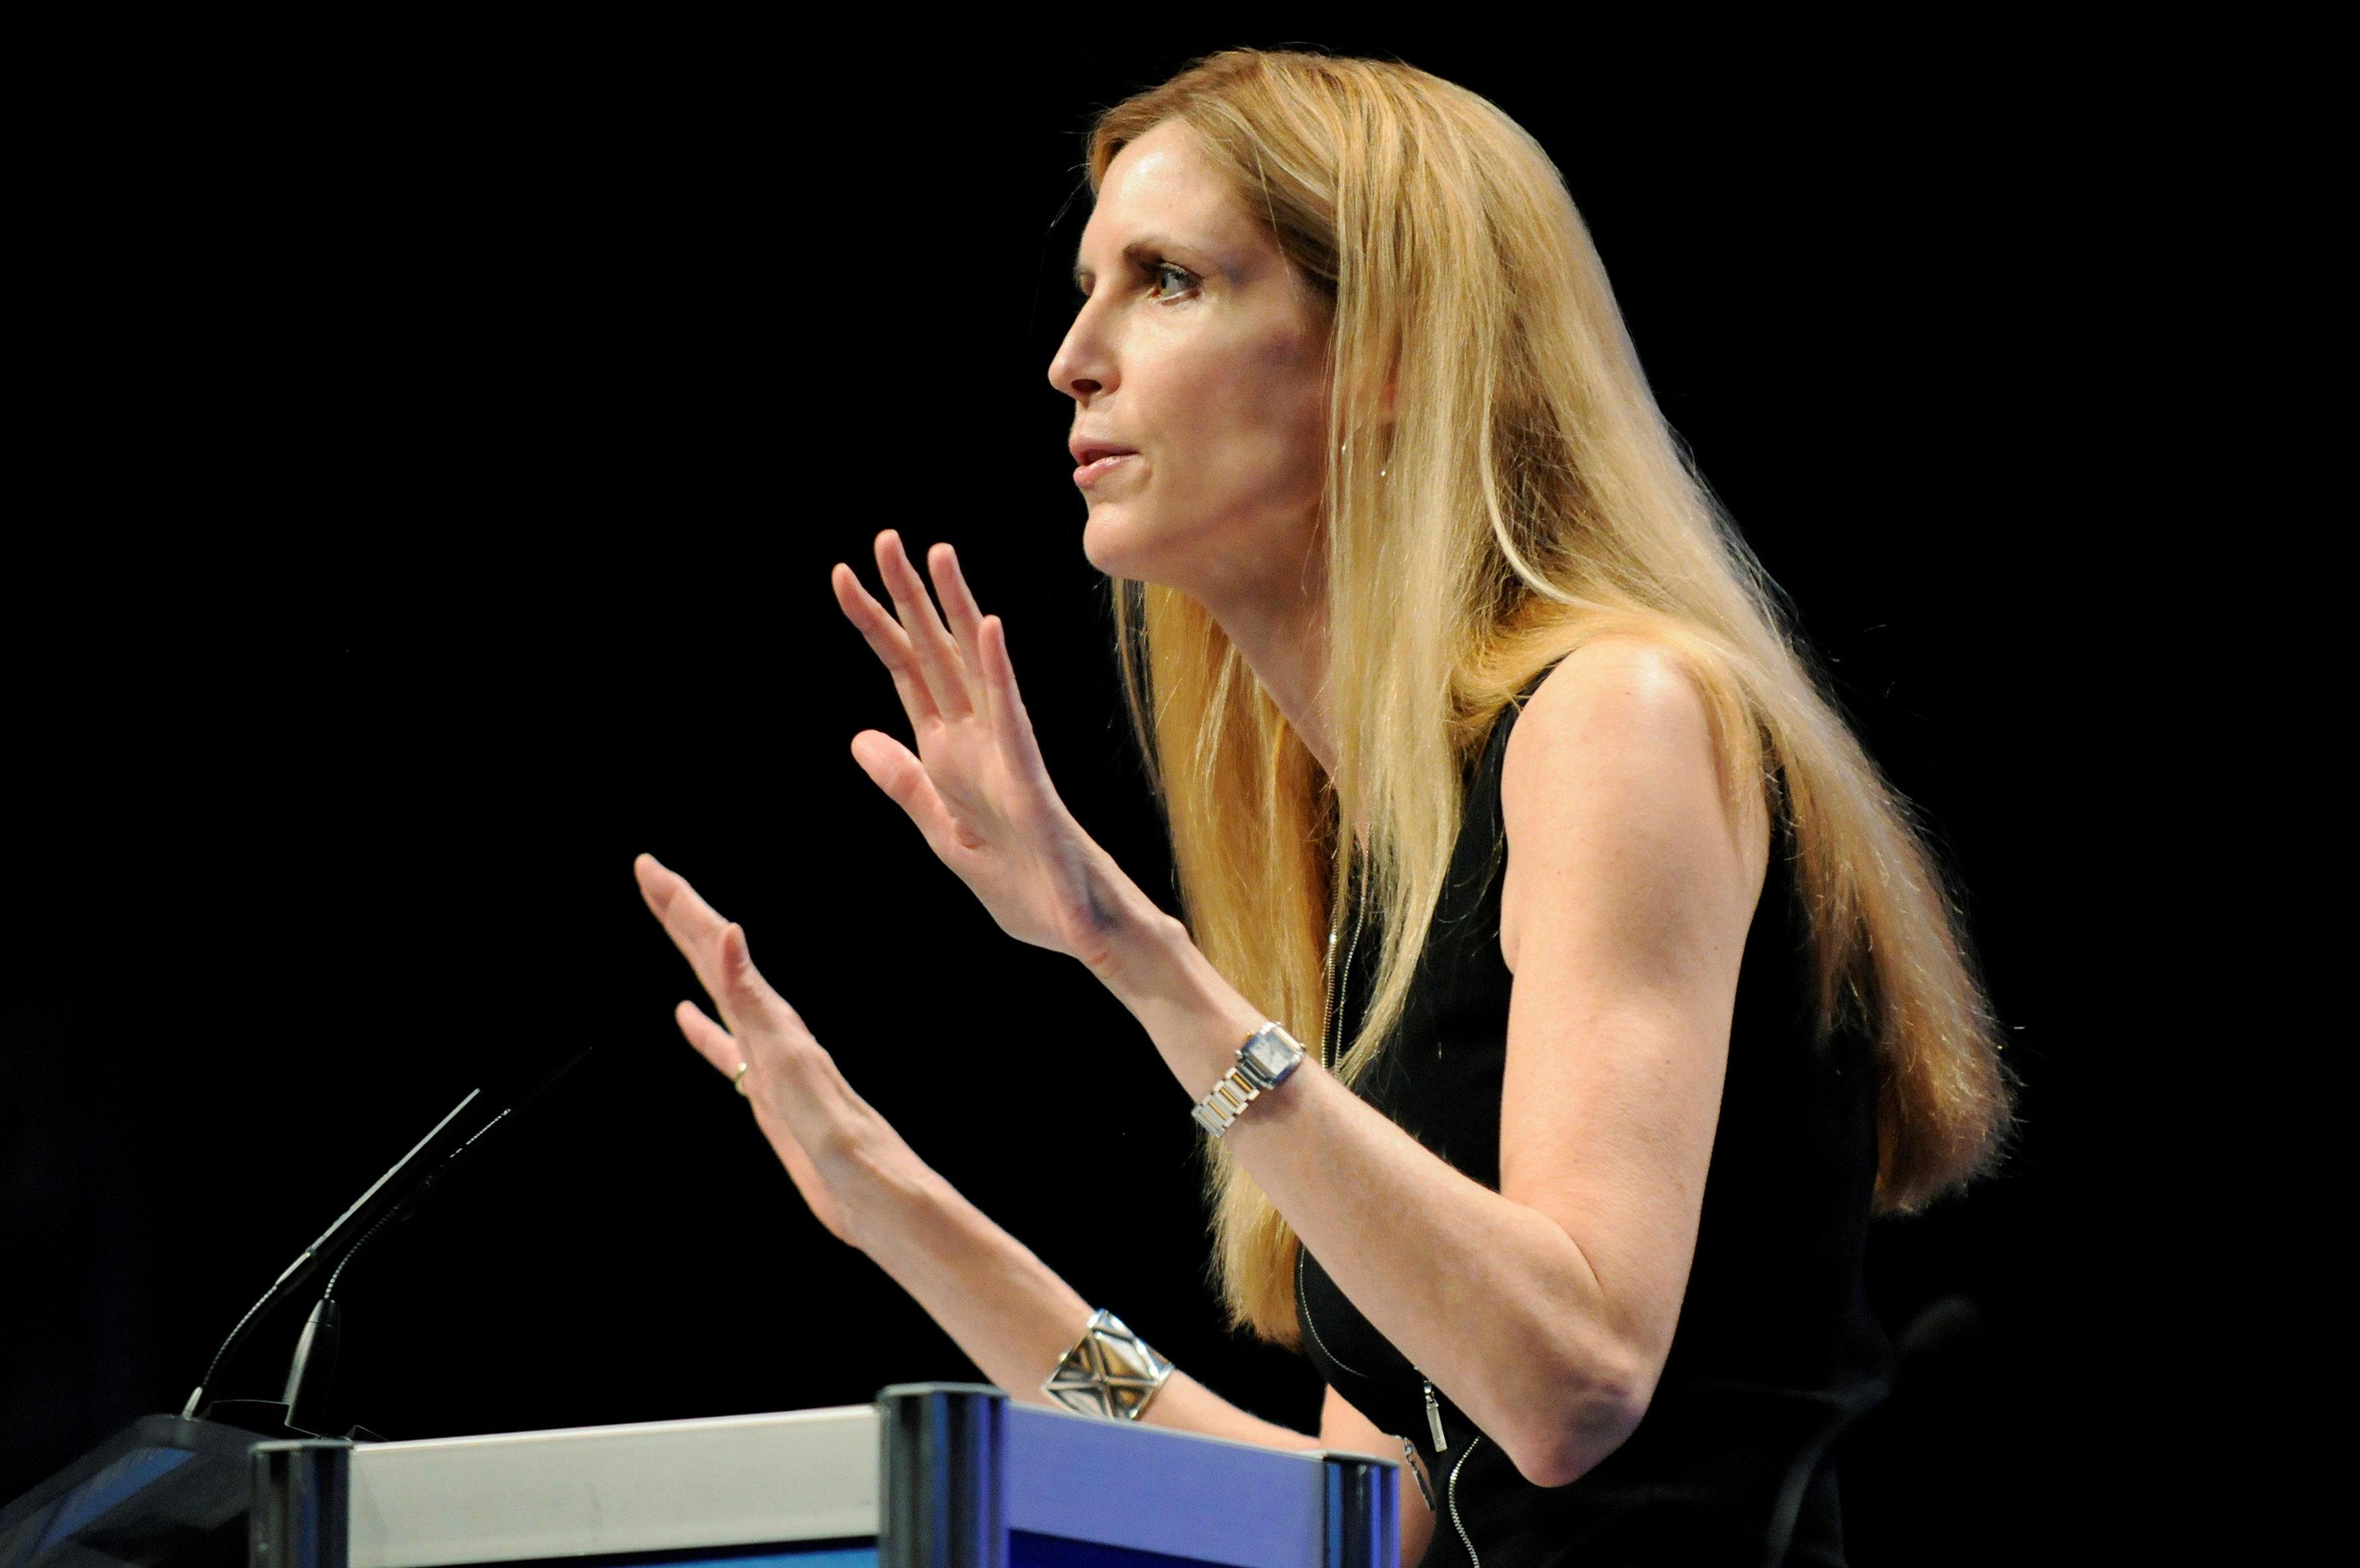 UC Berkeley threatened with lawsuits over Ann Coulter visit